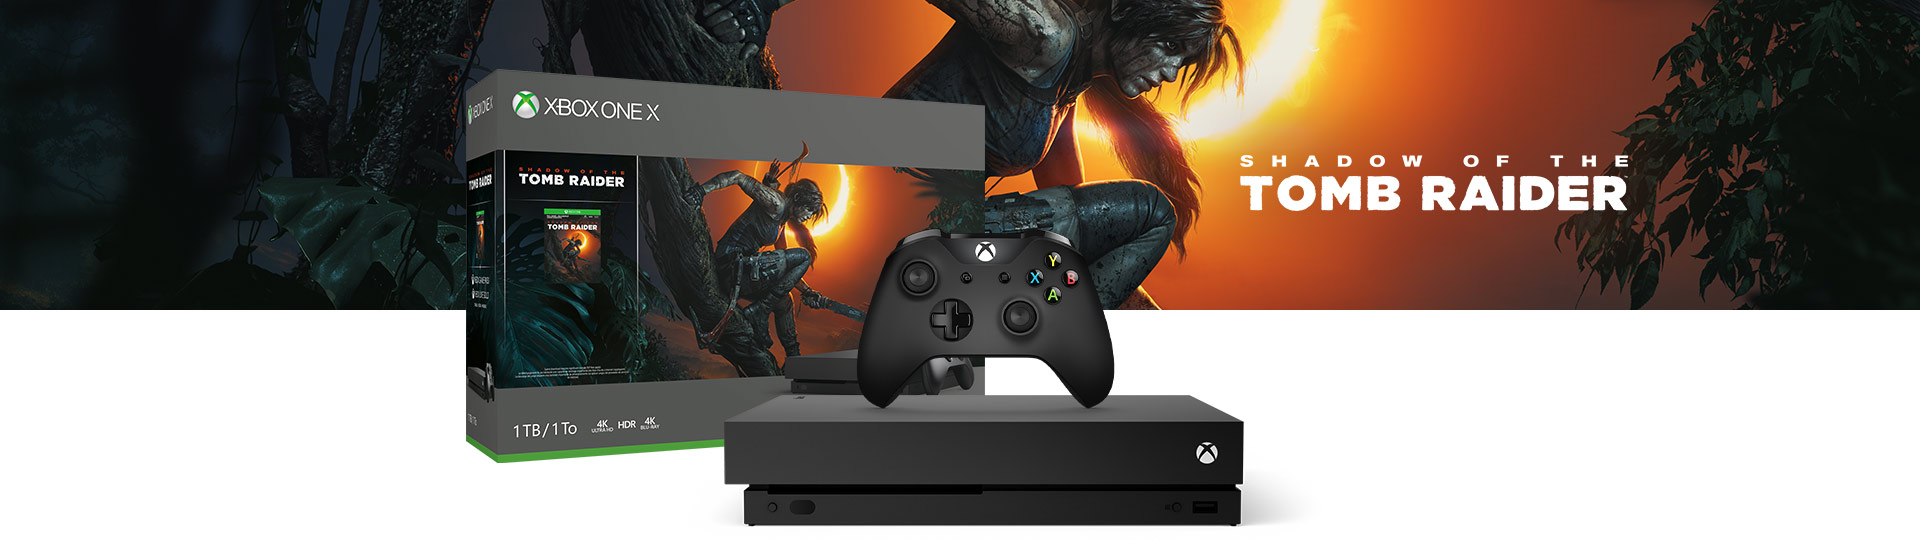 Xbox One X og Controller ved siden af Xbox One X Shadow of the Tomb Raider 1 TB-produktæske